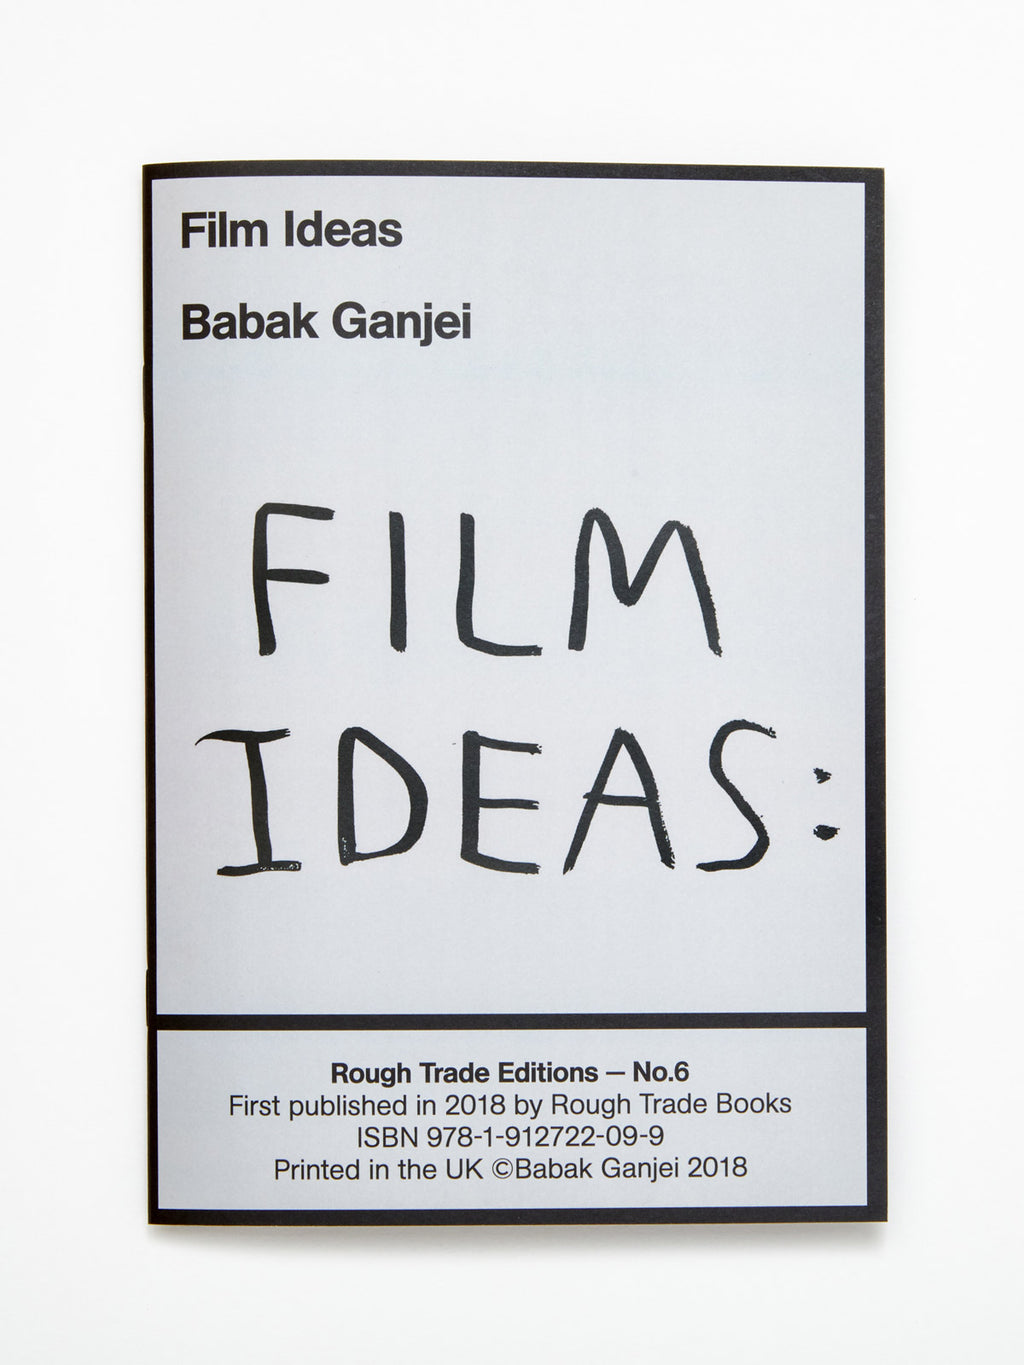 Babak Ganjei - Film Ideas